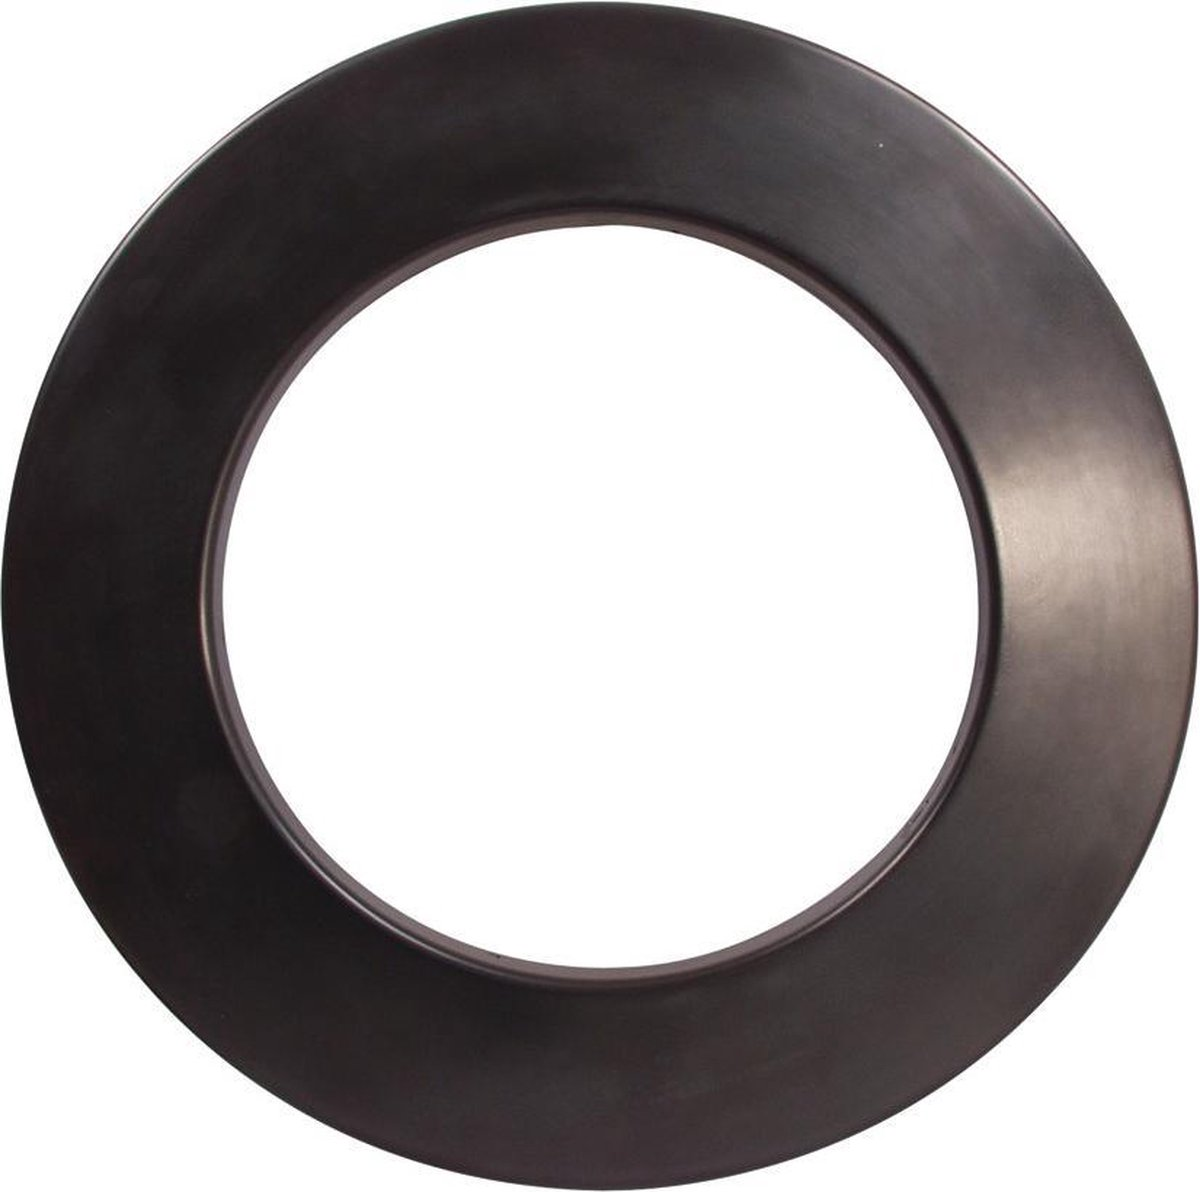 Buffalo Darbord Surround Ring - Zwart